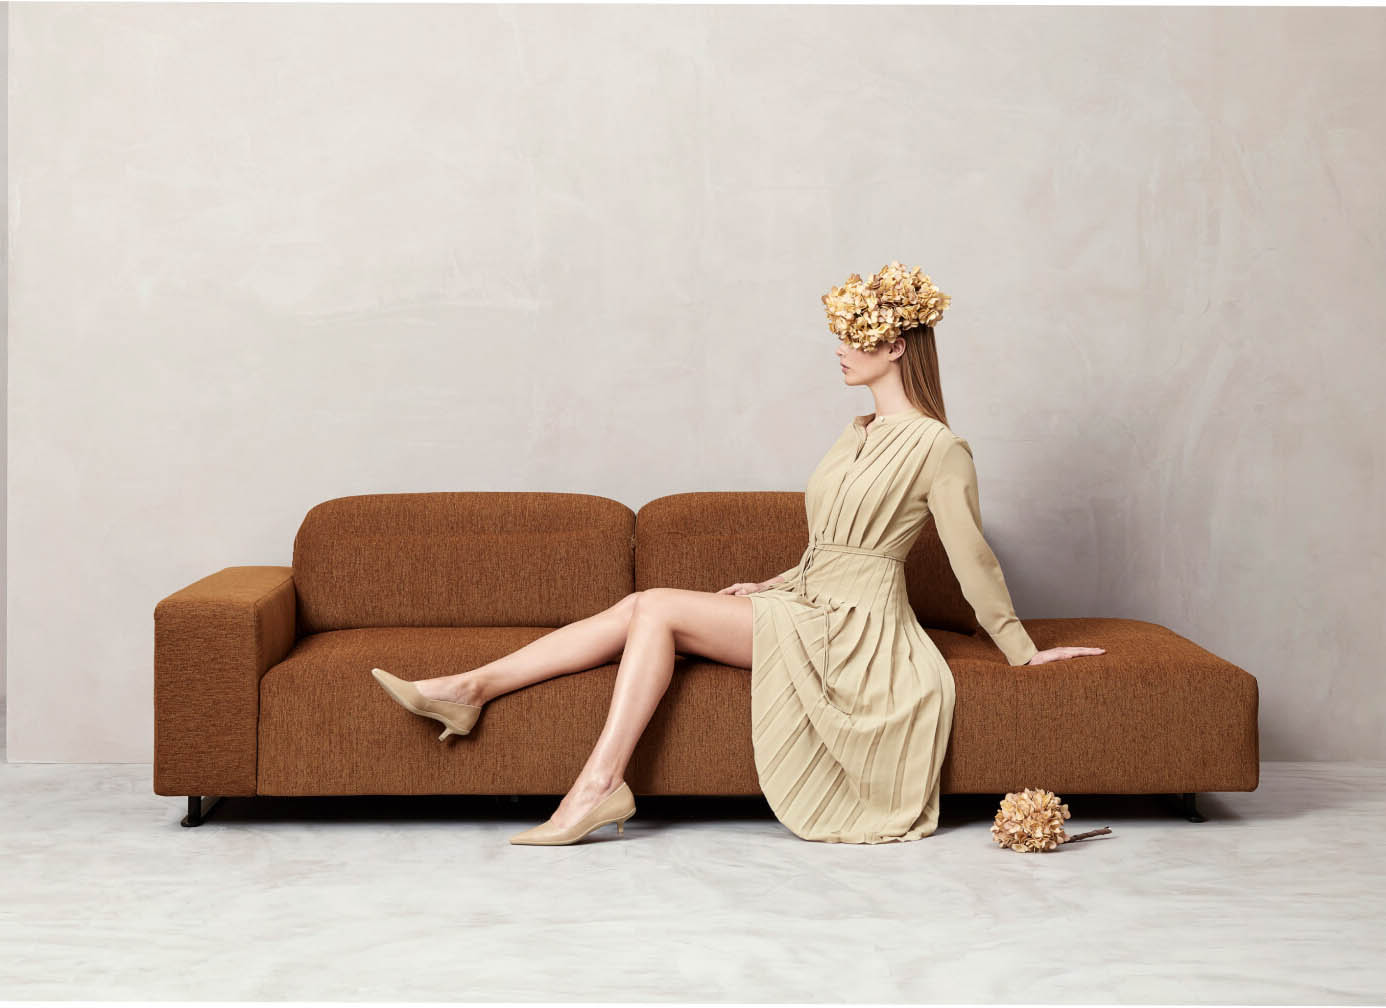 The Marketing Store Launches BoConcept's 'Make Your Statement' Campaign